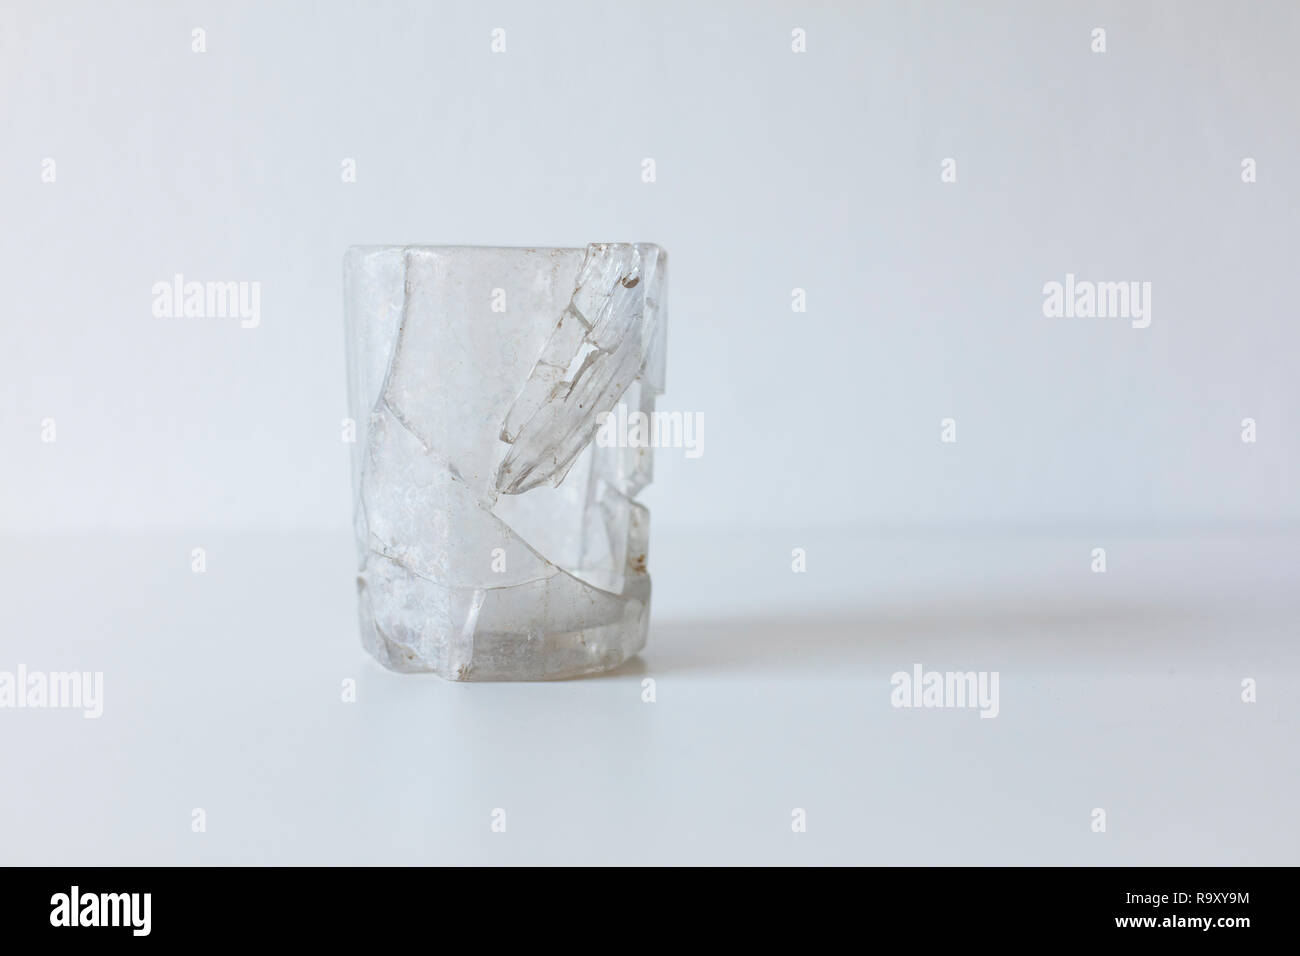 An old broken glass - Stock Image